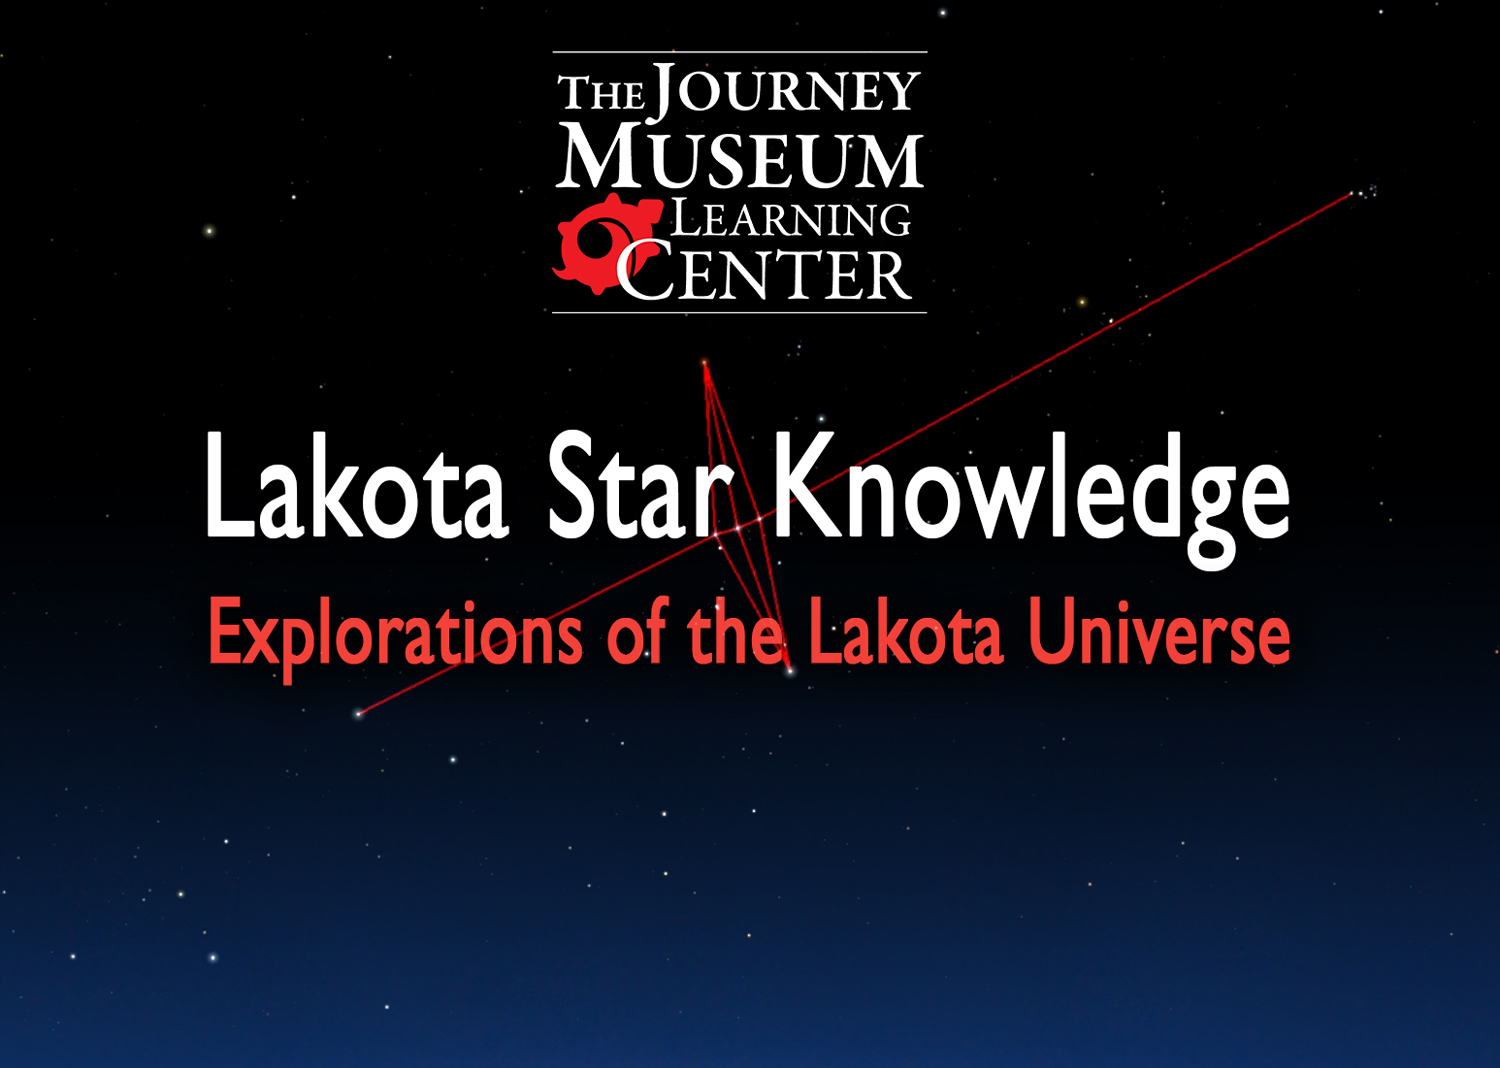 """""""Lakota Star Knowledge"""" is a 27-minute film which links the Greco-Roman view of constellations with that of traditional Lakota culture. It was directed by filmmaker Sam Hearst with the assistance of CAIRNS (The Center for American Indian Research and Native Studies) under the direction of Dr. Craig Howe, and with additional support from Oglala Lakota College.    The film features Dr. Howe and middle school students from Spring Creek School on the Rosebud Reservation. The film was funded by NASA. DVDs are available for purchase."""